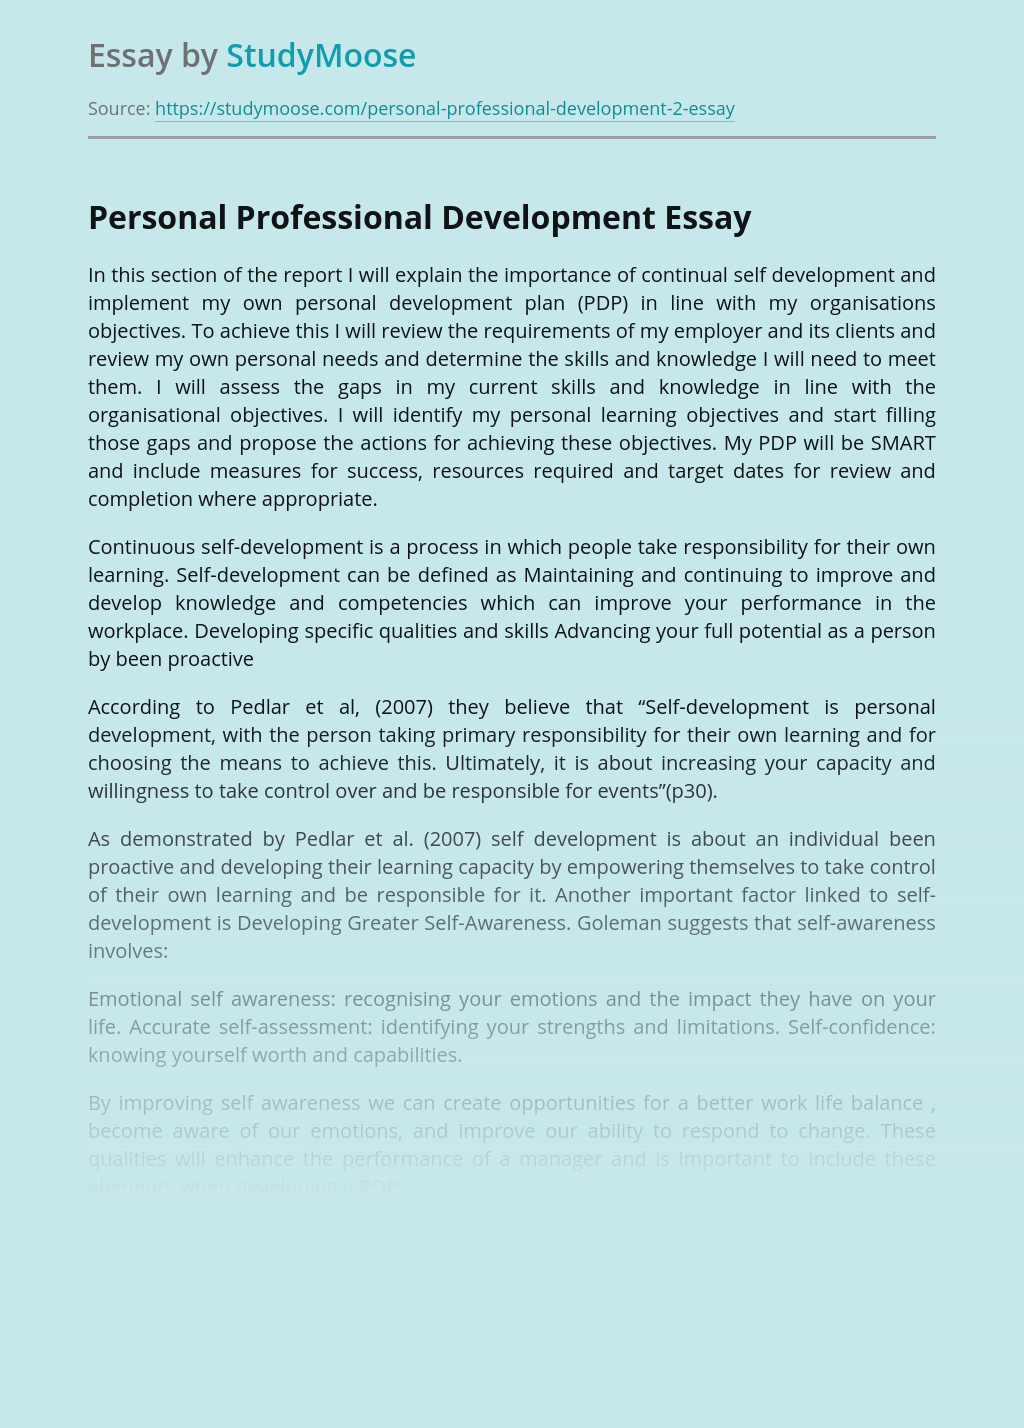 Personal Growth And Development - A Transformational ...